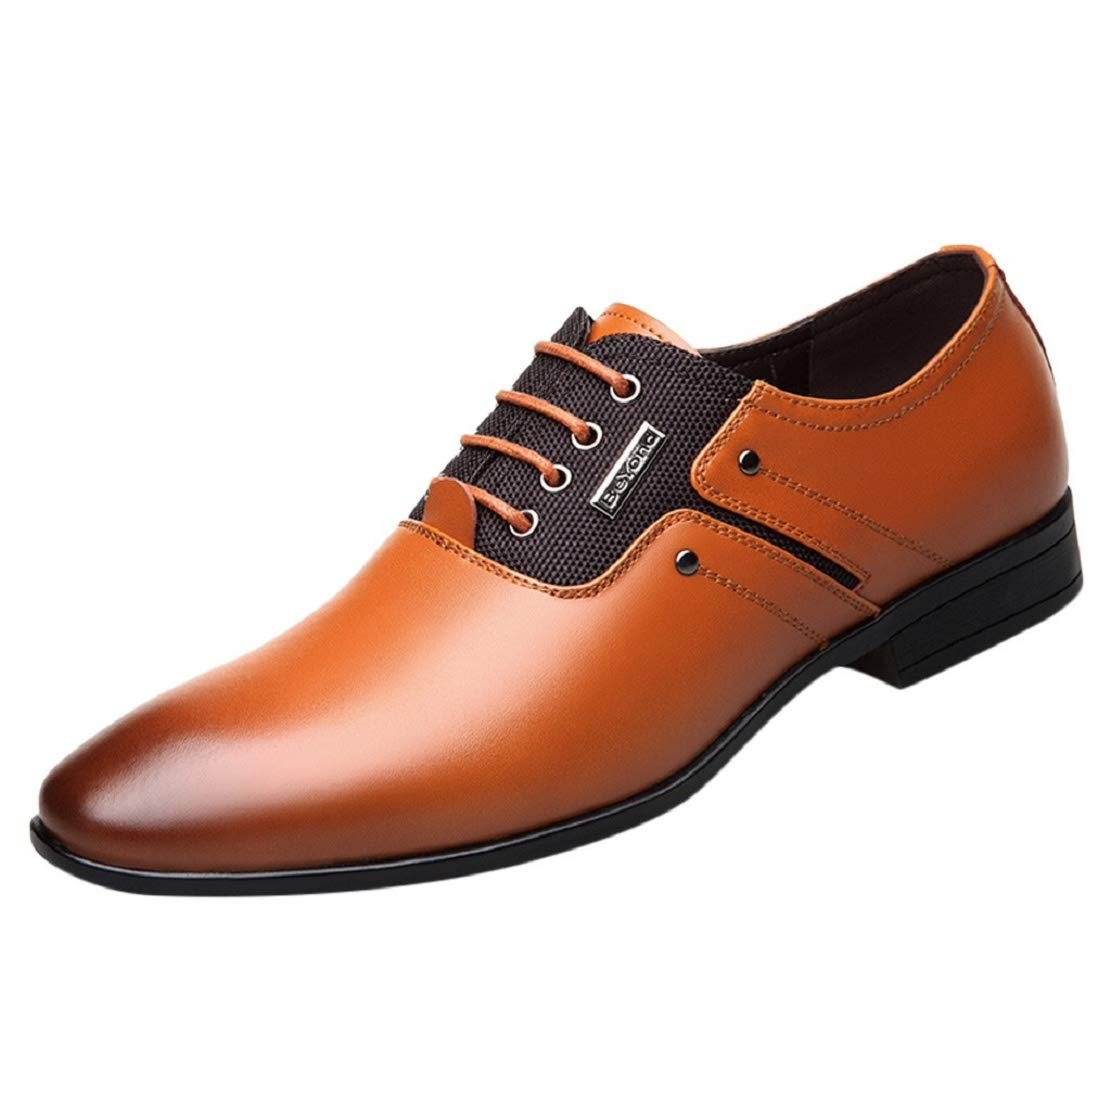 Men's Lace up Oxford Dress Shoes Pointed Toe Business Fashion Leather Comfortable Classic Shoes by Lowprofile Yellow